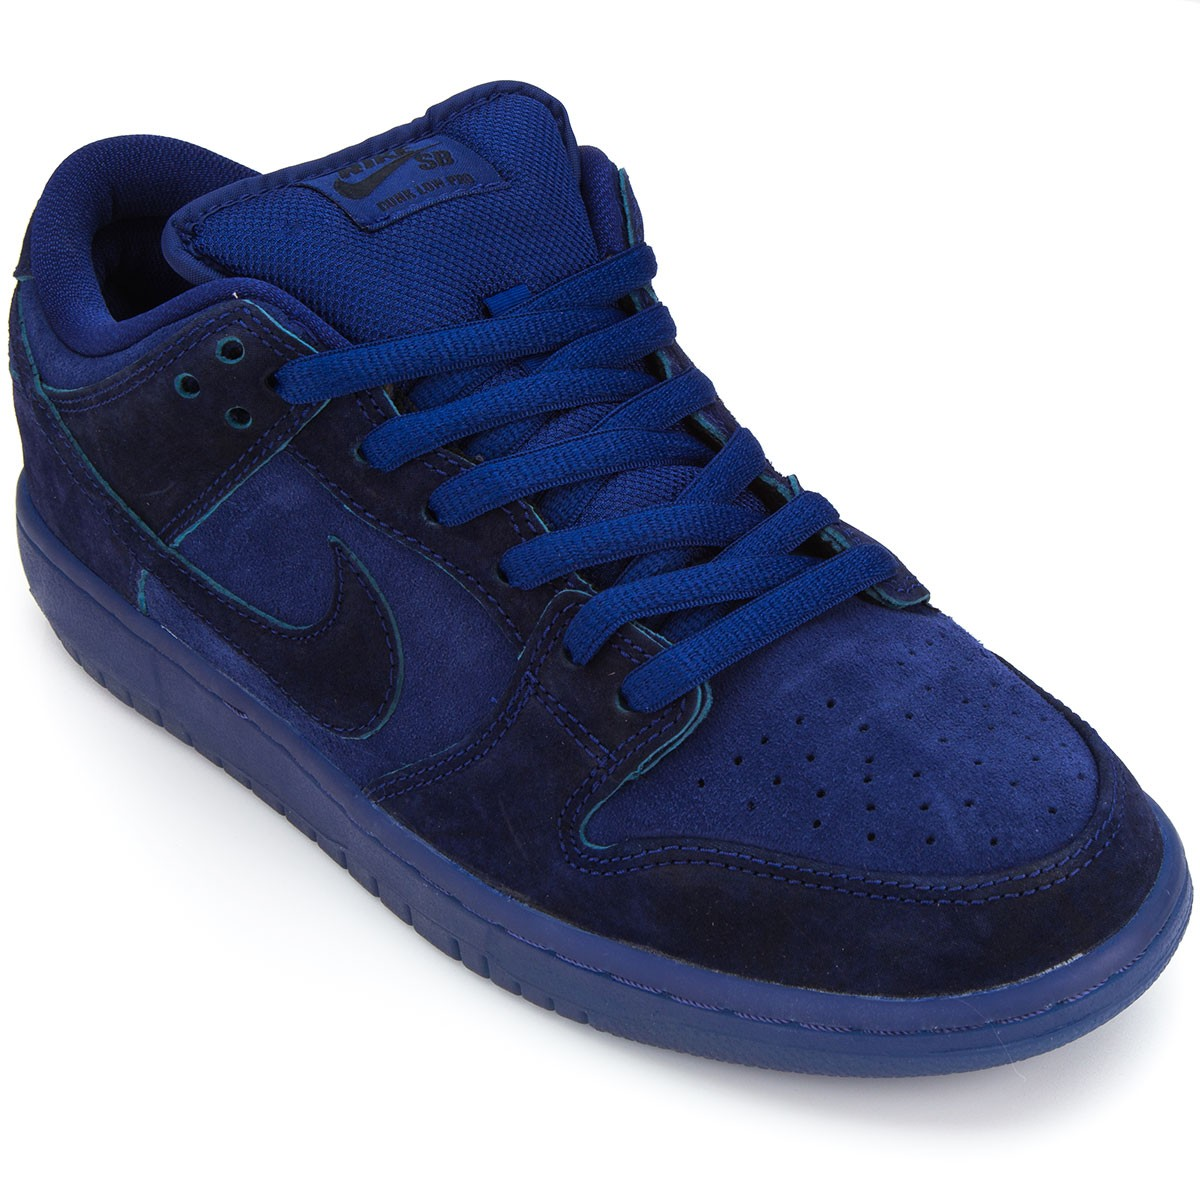 Nike Sb Dunk Low Skate Shoes Review